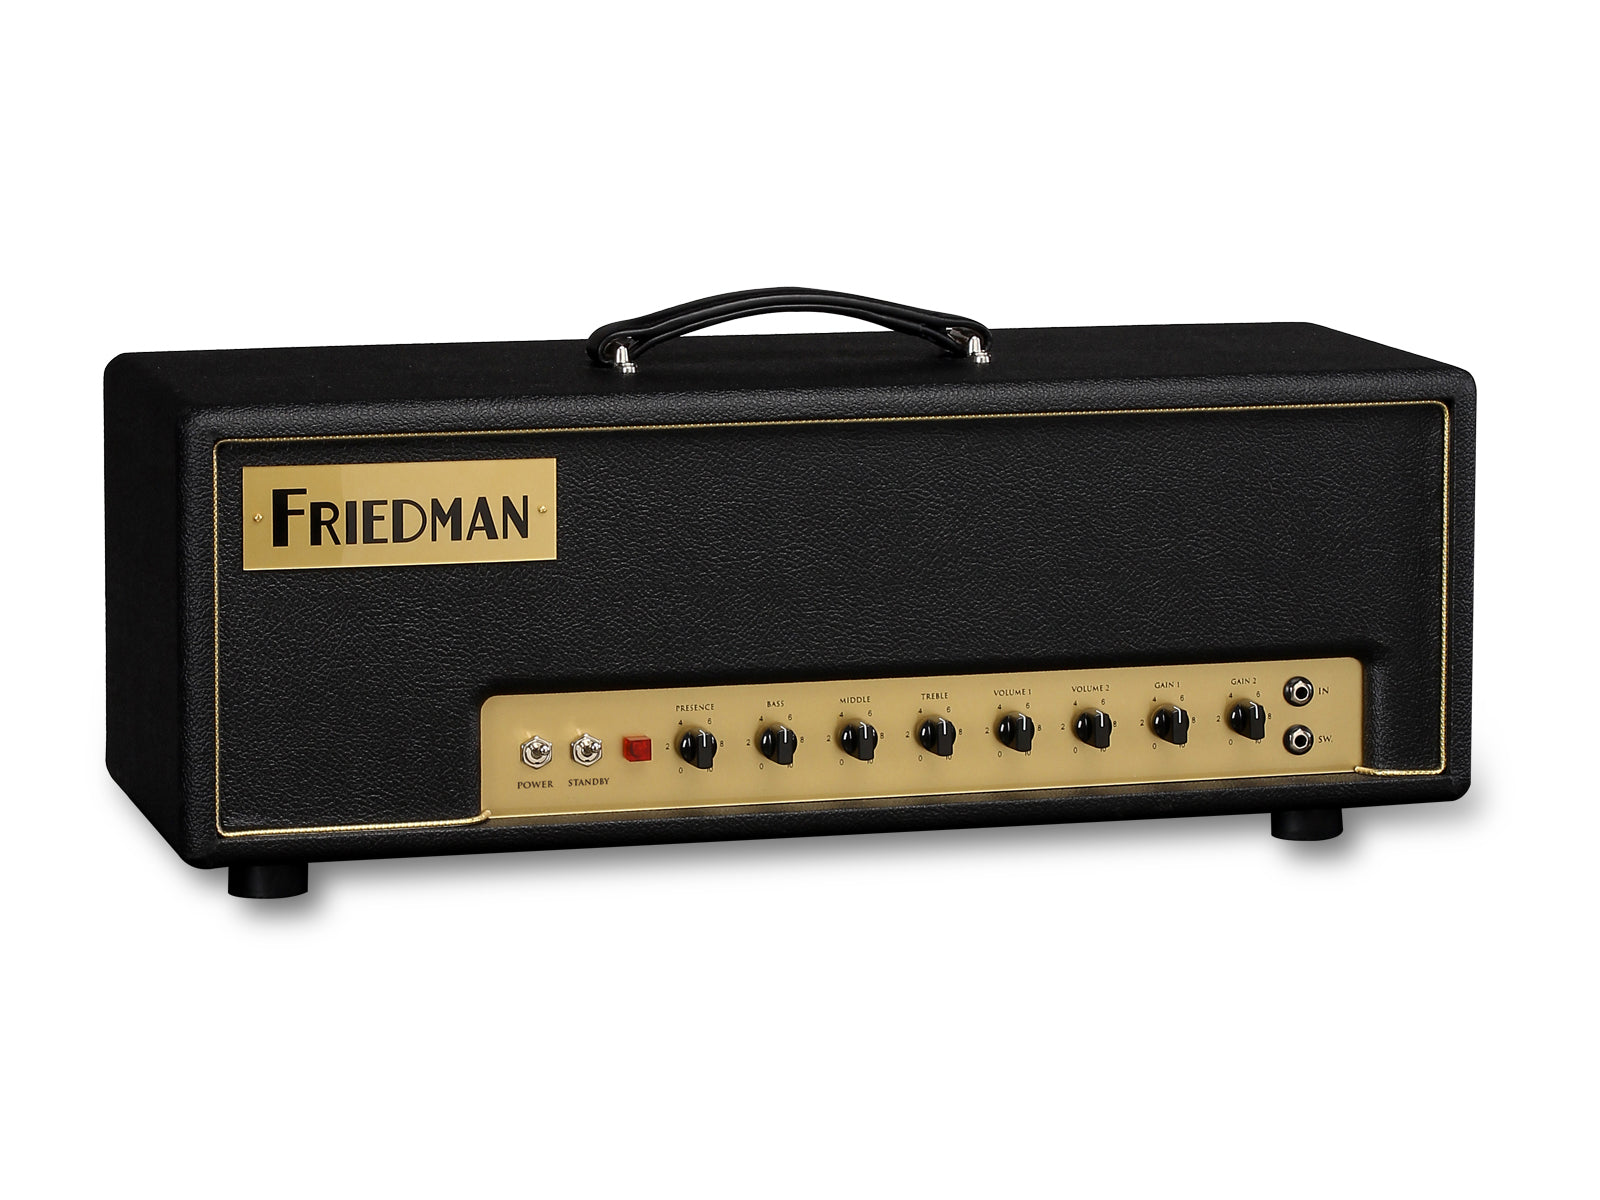 Friedman Smallbox